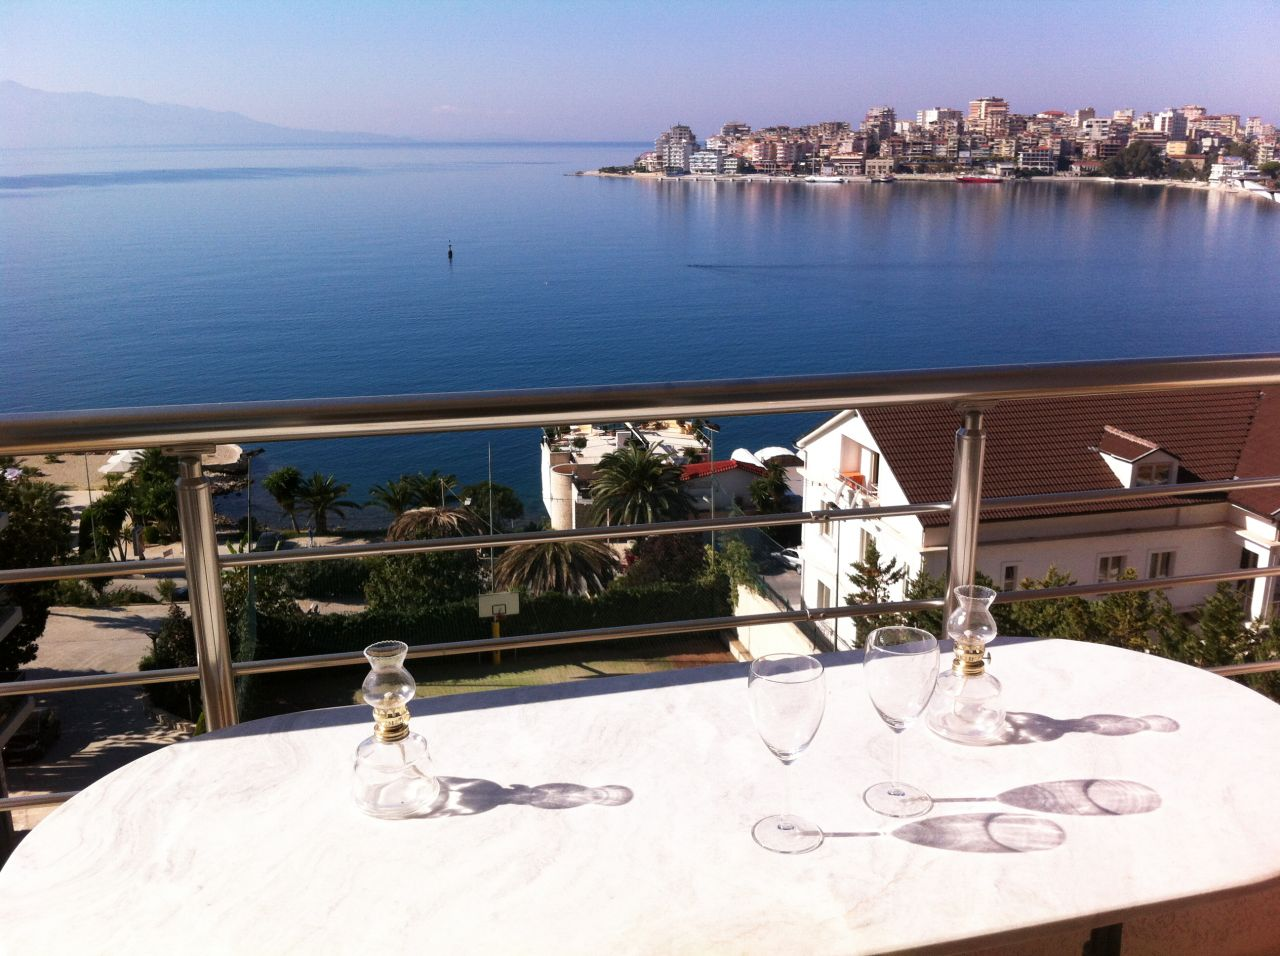 Holiday in Albania. Apartment for rent in Saranda